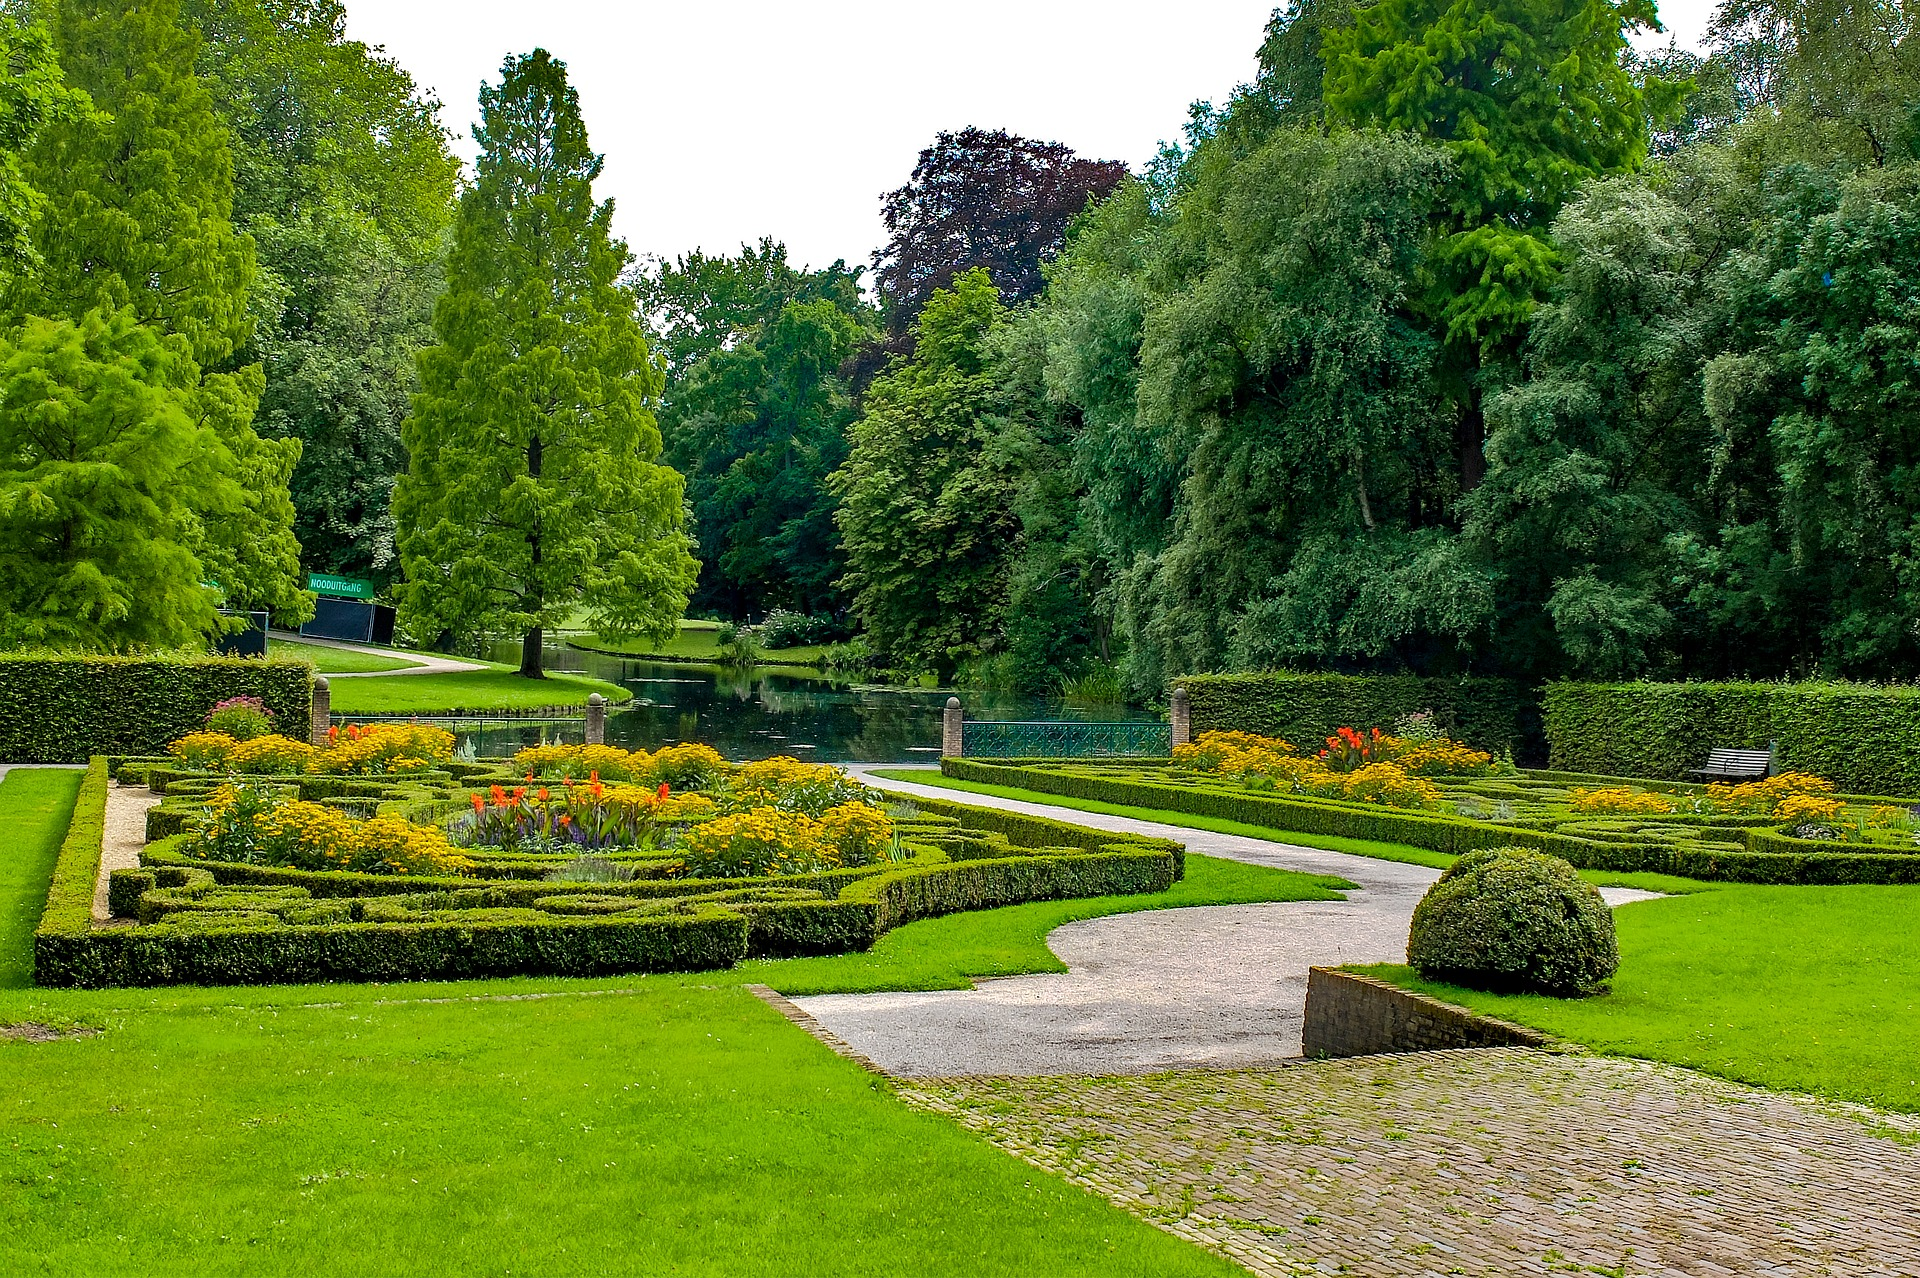 Der Stadtpark der Hafenstadt in Holland